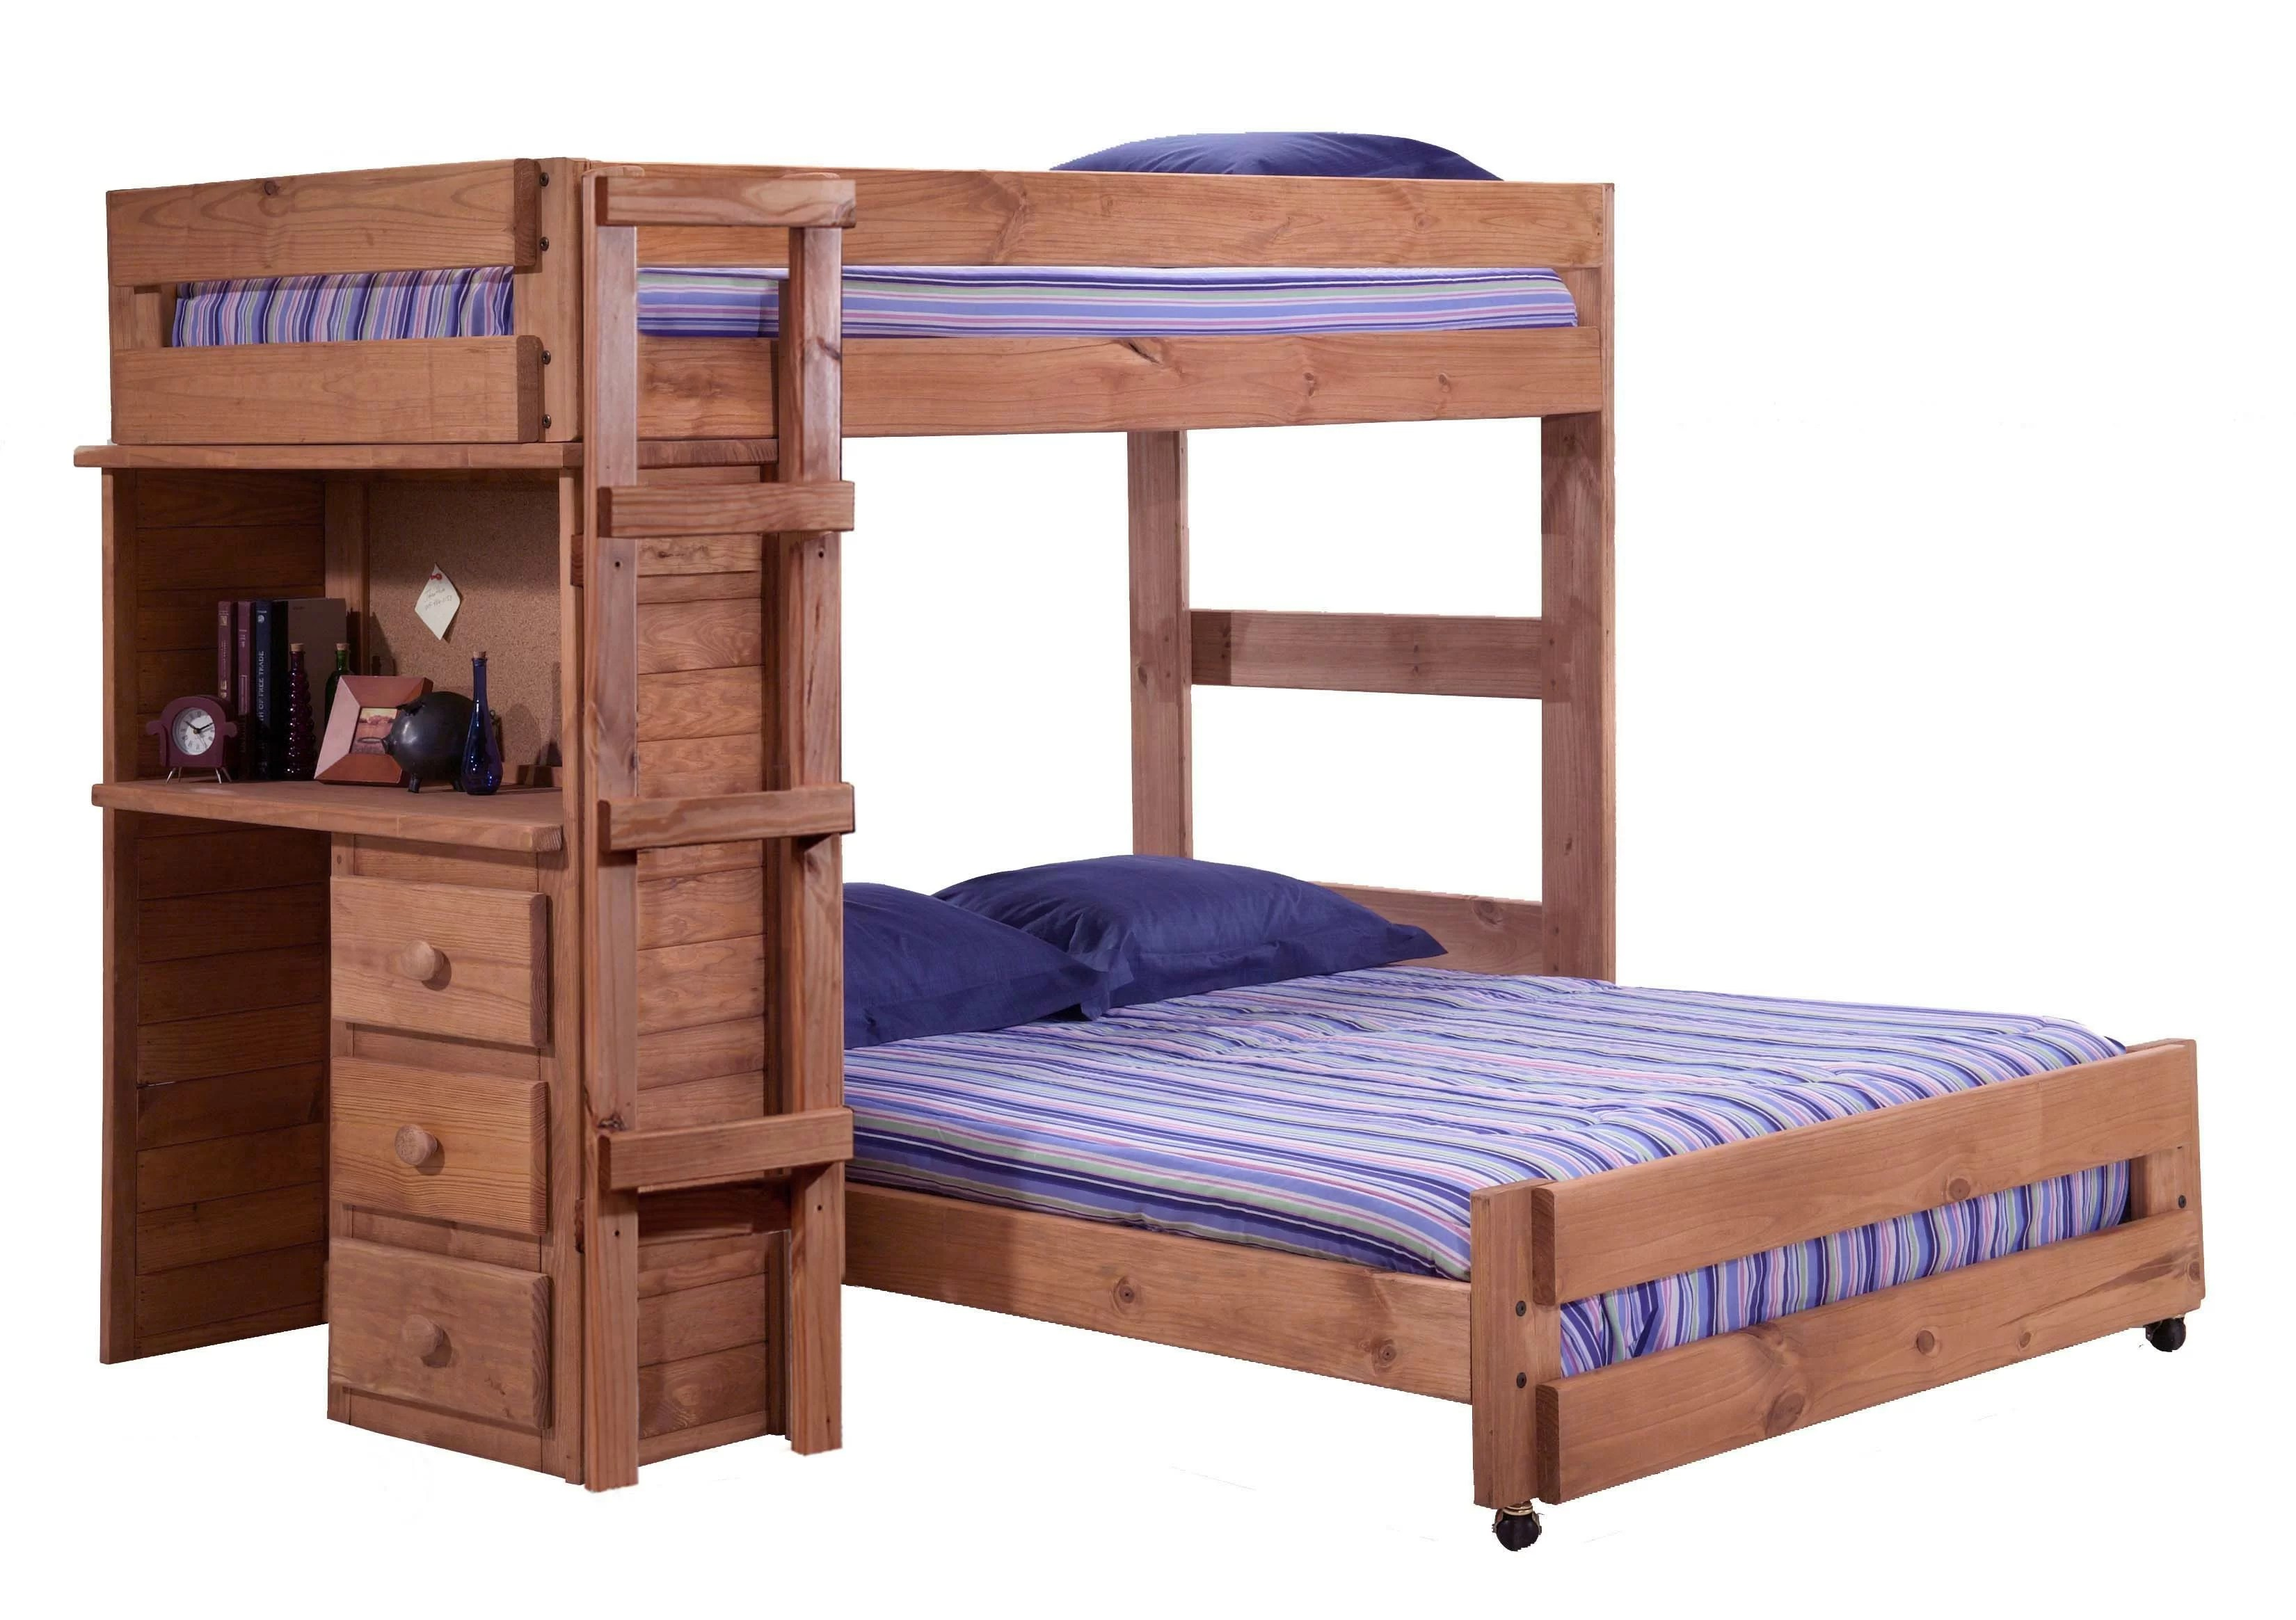 Harriet Bee Chumbley Twin Over Full L Shaped Bunk Bed With Desk